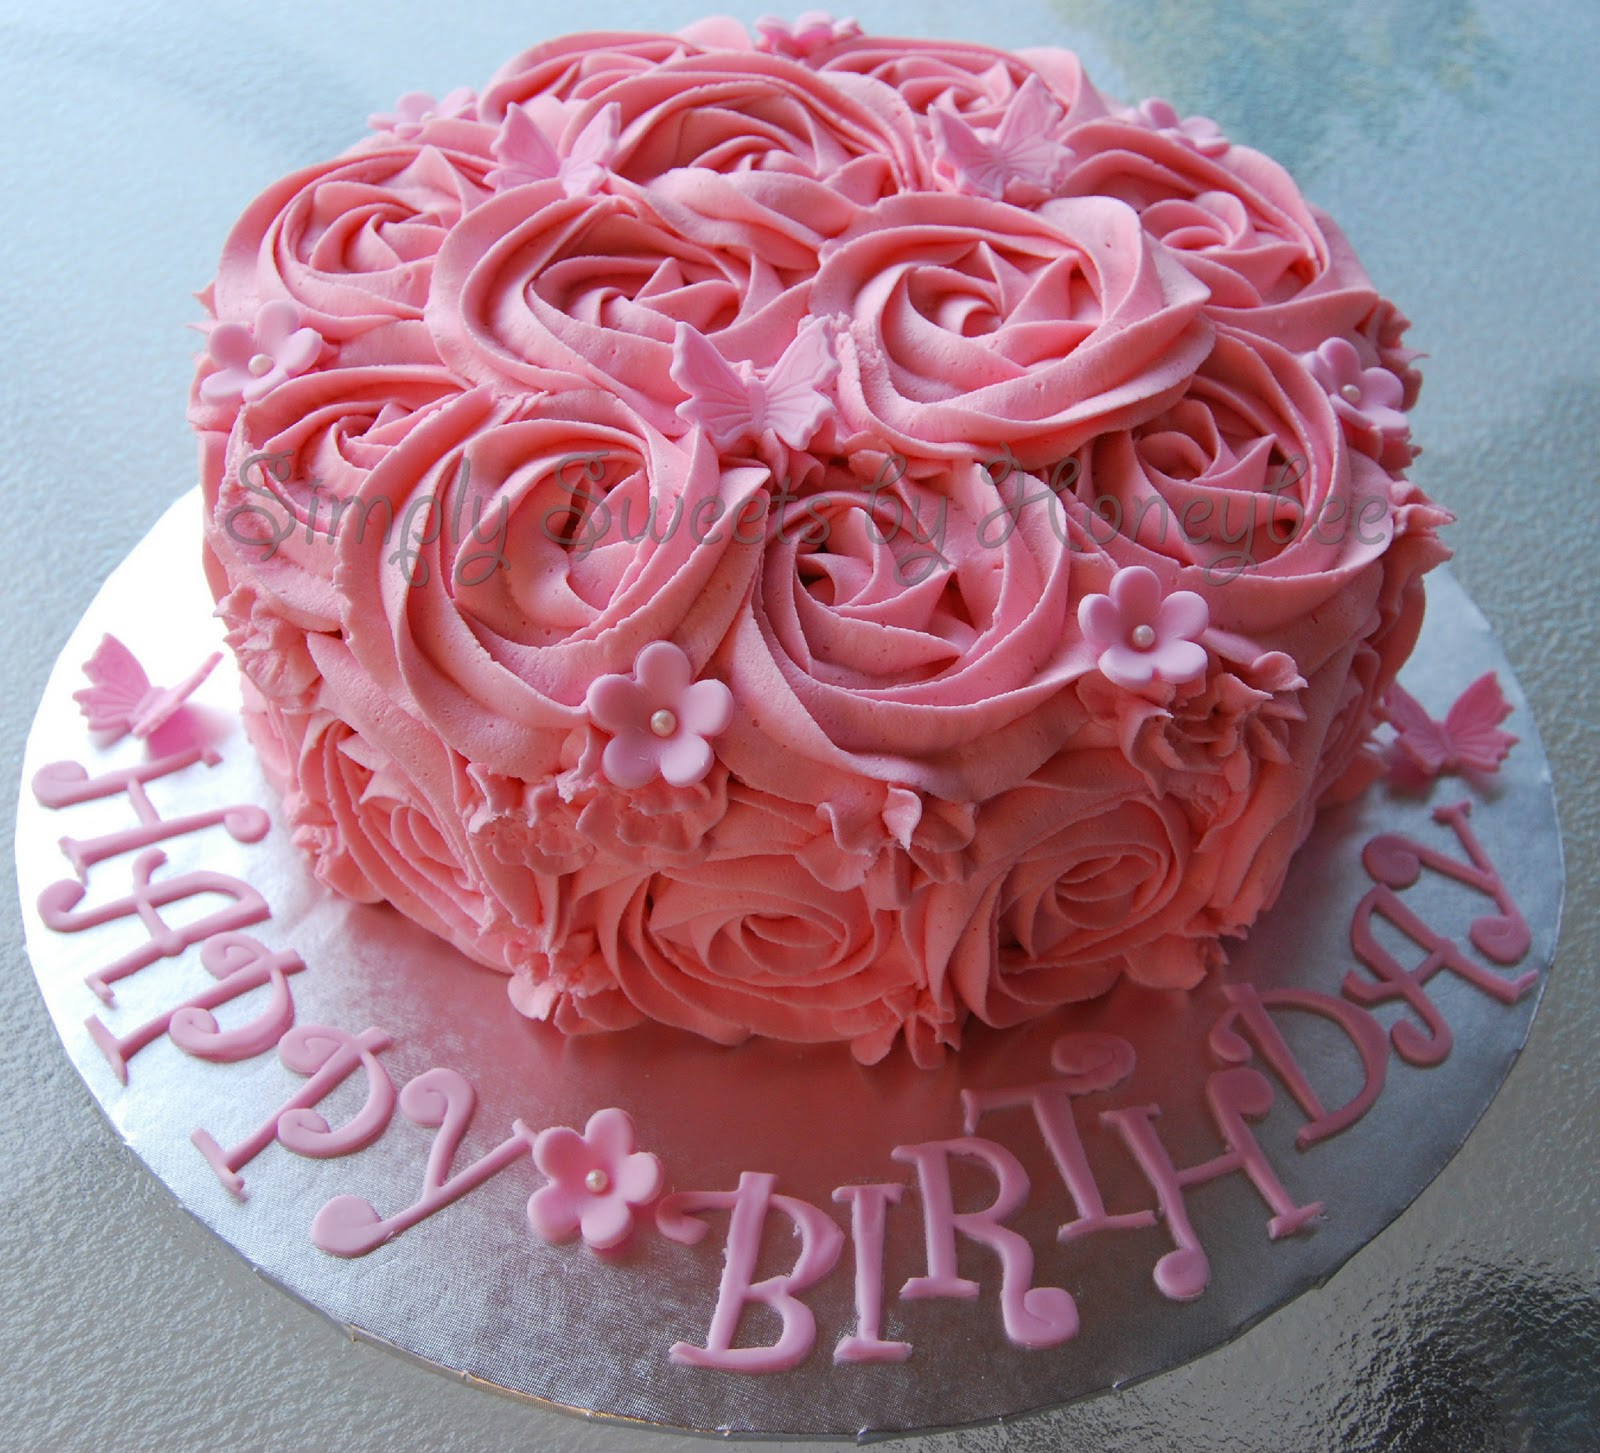 Best ideas about Roses Birthday Cake . Save or Pin Two Birthday Cakes simplysweetsbyhoneybee Now.